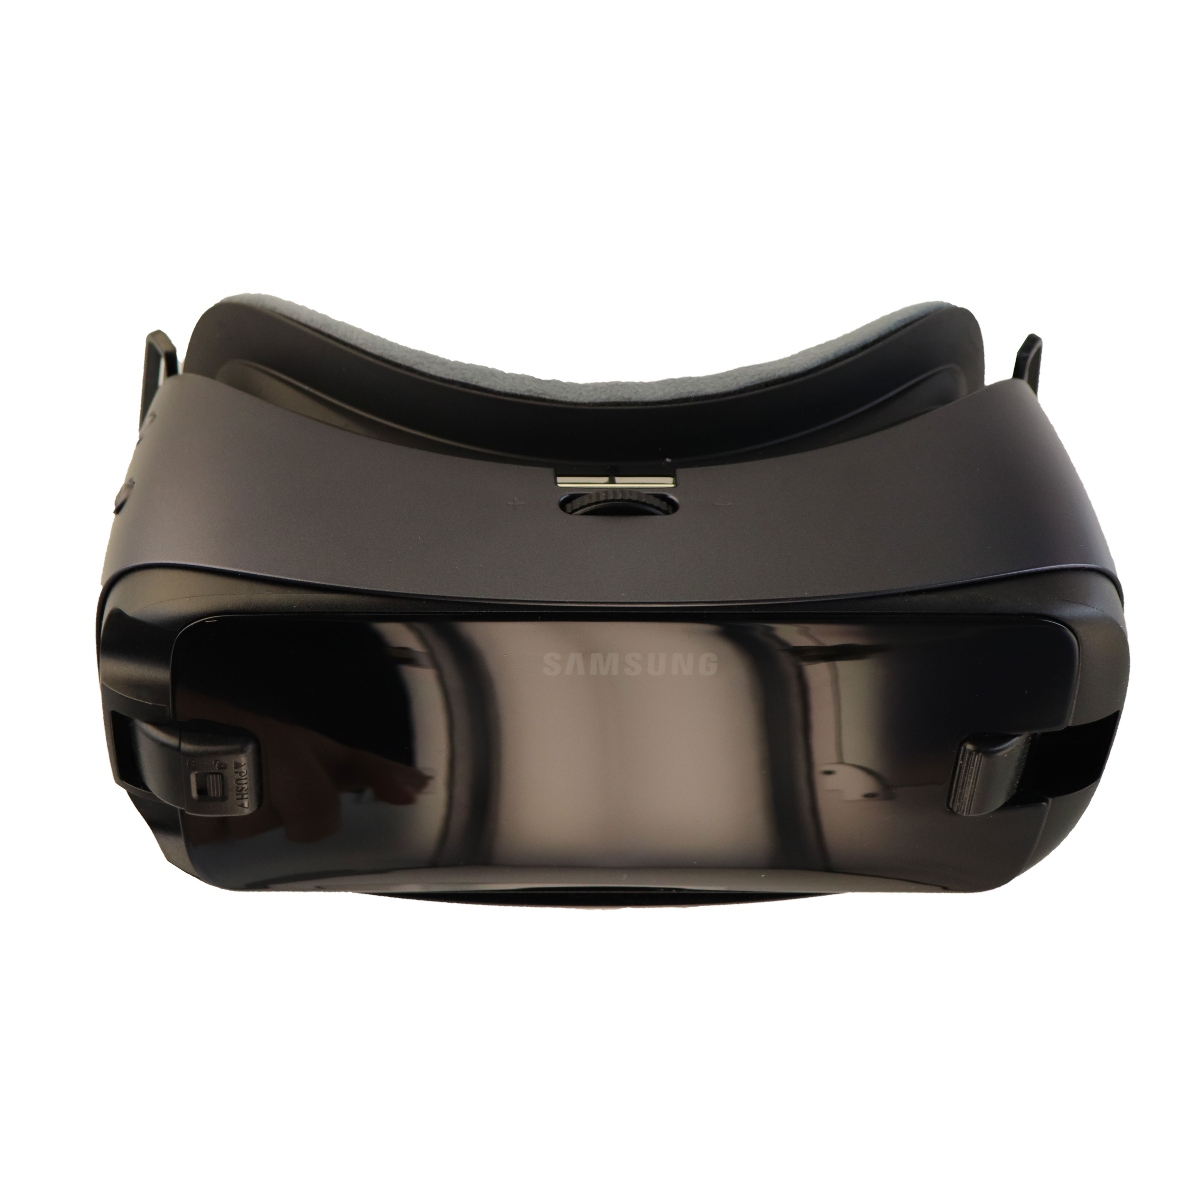 Samsung Gear VR Headset with Controller (2017) Latest Edition SM-R325NZVAXAR